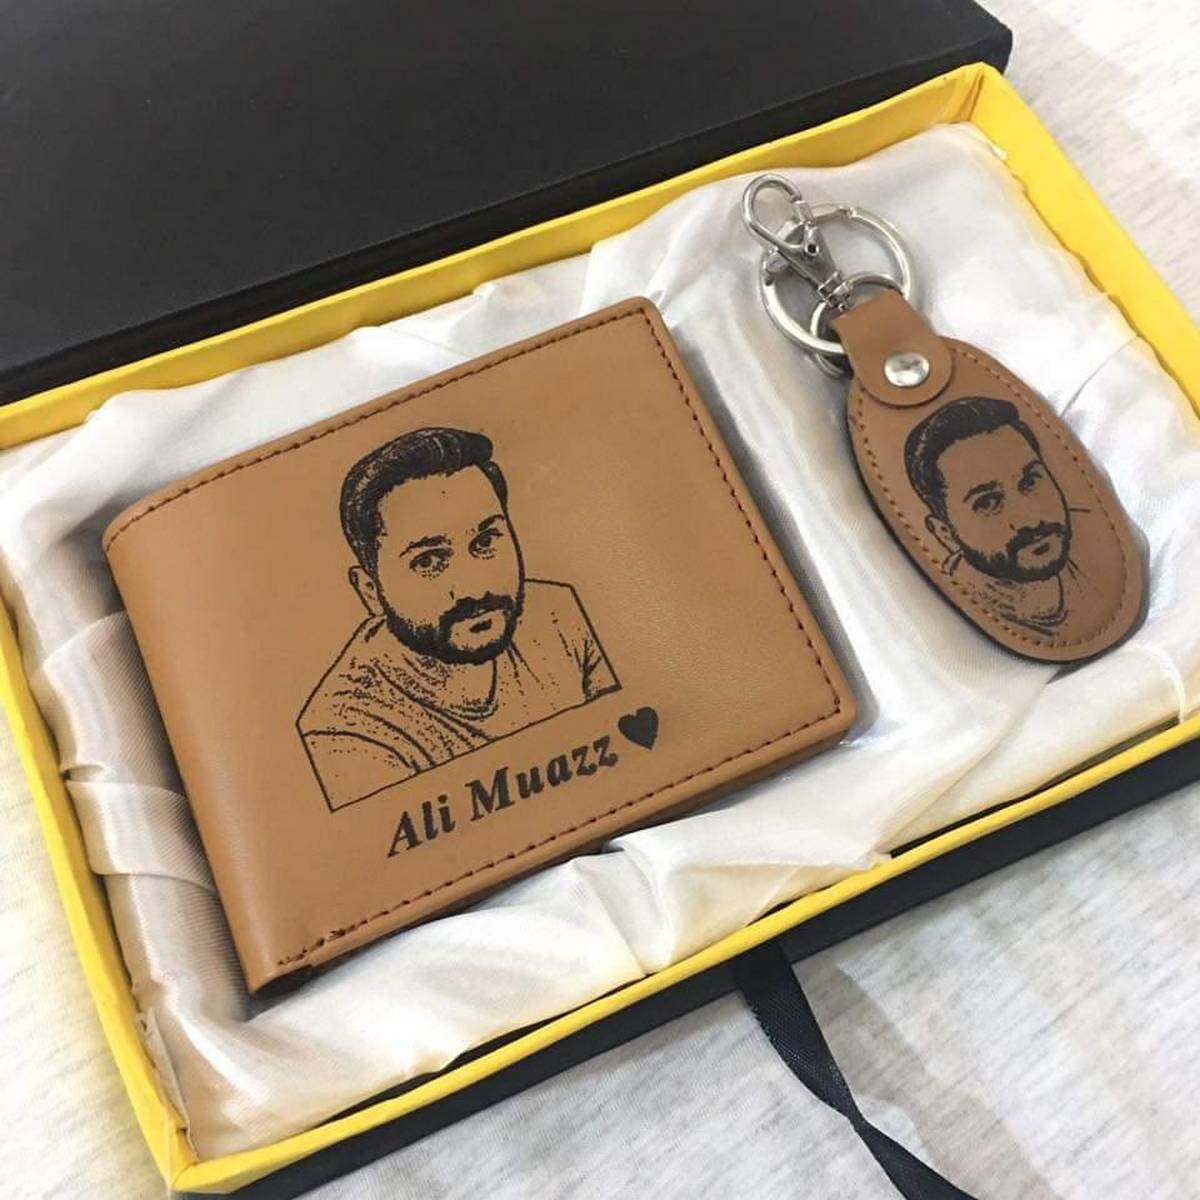 Customized/Personalized Name And Picture Engraved On Wallet and Key chain With Gift Box Packing (PERFECT GIFT TO SEND YOUR LOVED ONES)